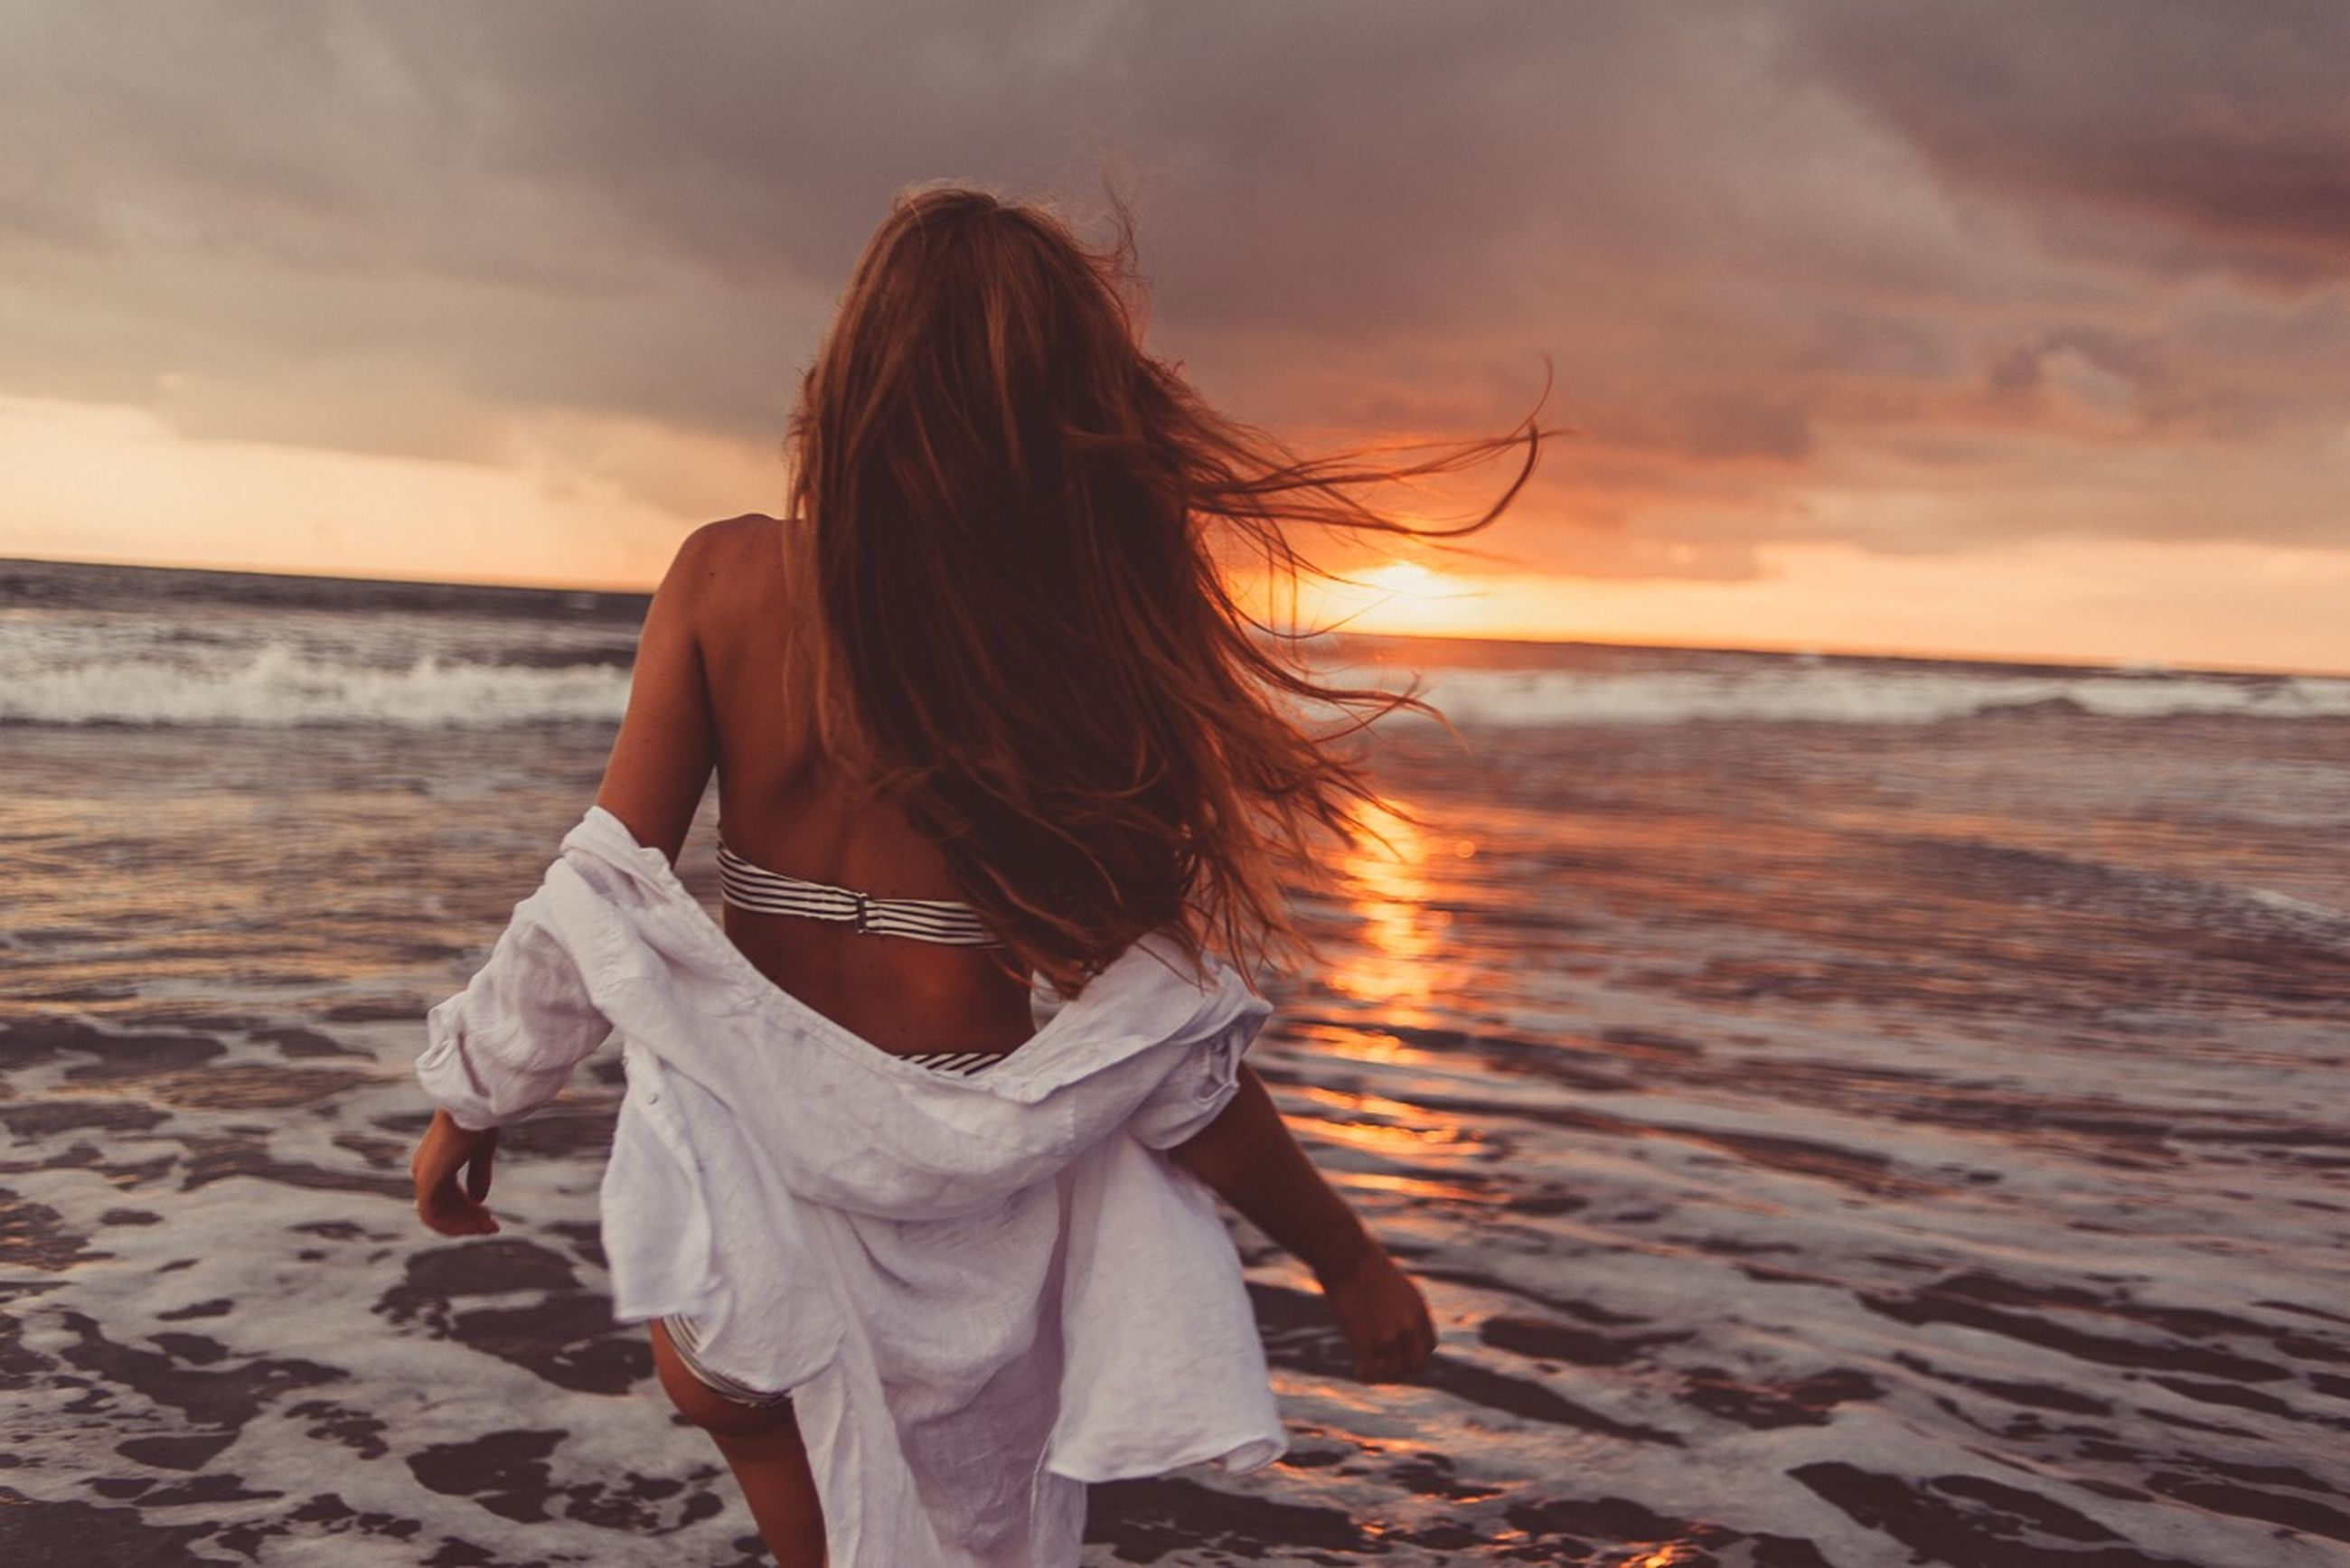 beach, sea, land, sky, sunset, water, one person, real people, beauty in nature, cloud - sky, women, leisure activity, hairstyle, scenics - nature, hair, lifestyles, rear view, nature, long hair, horizon over water, outdoors, looking at view, wind